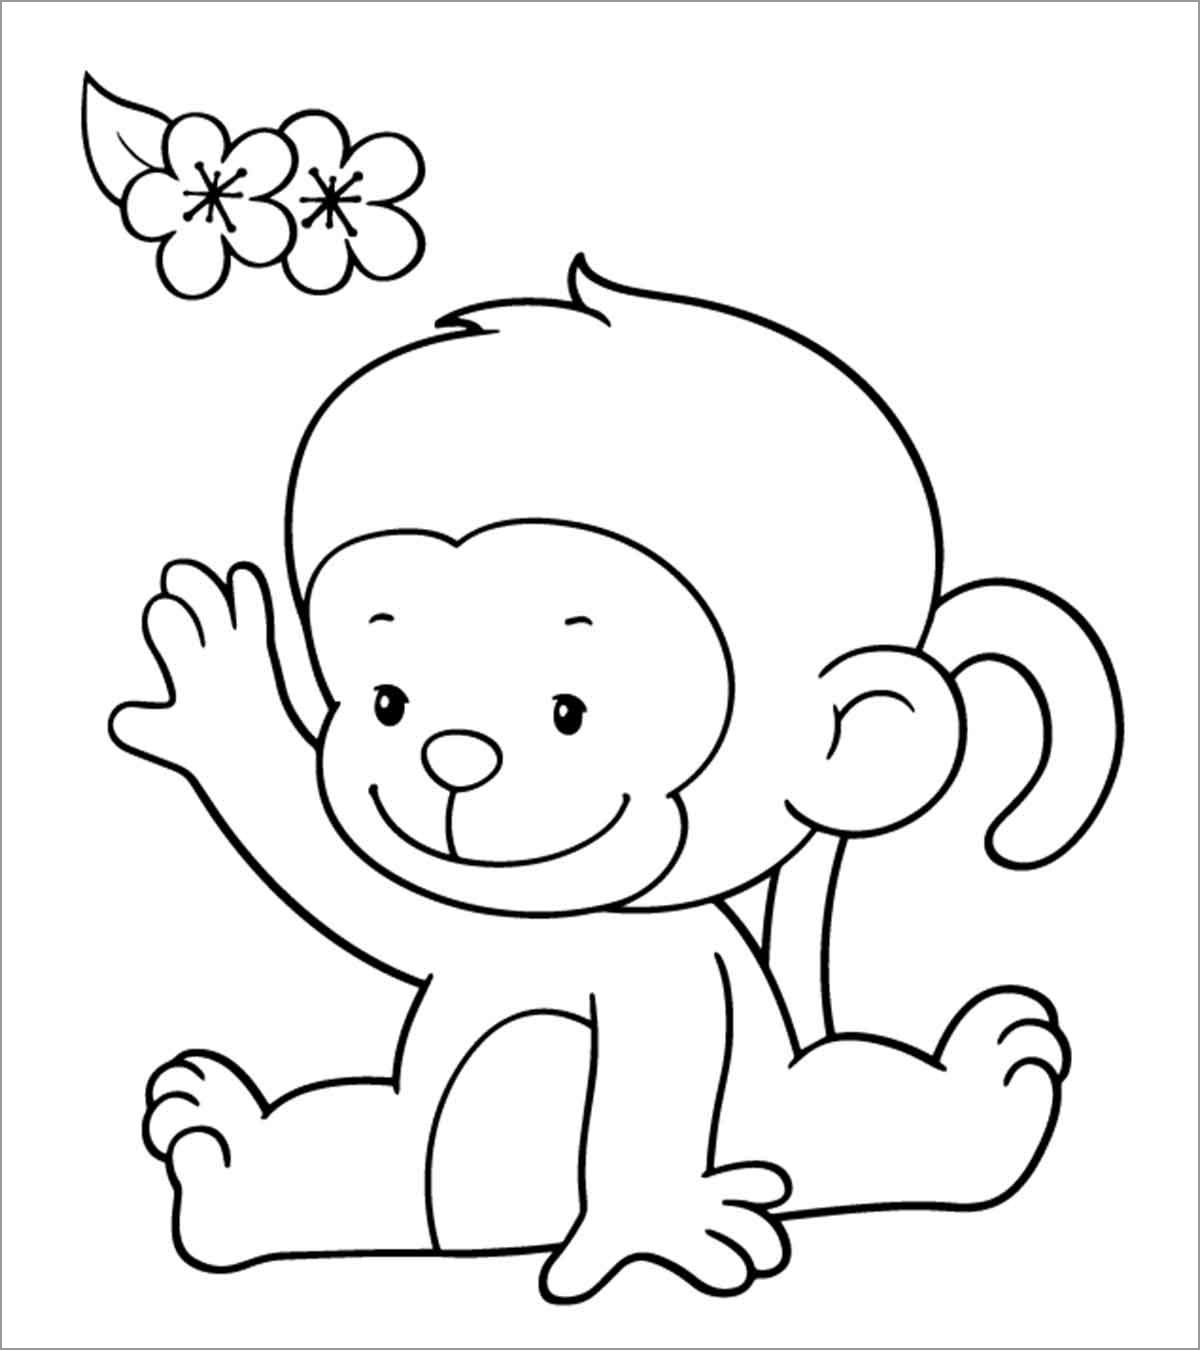 colouring pictures of monkeys coloring pages of monkeys printable activity shelter of colouring pictures monkeys